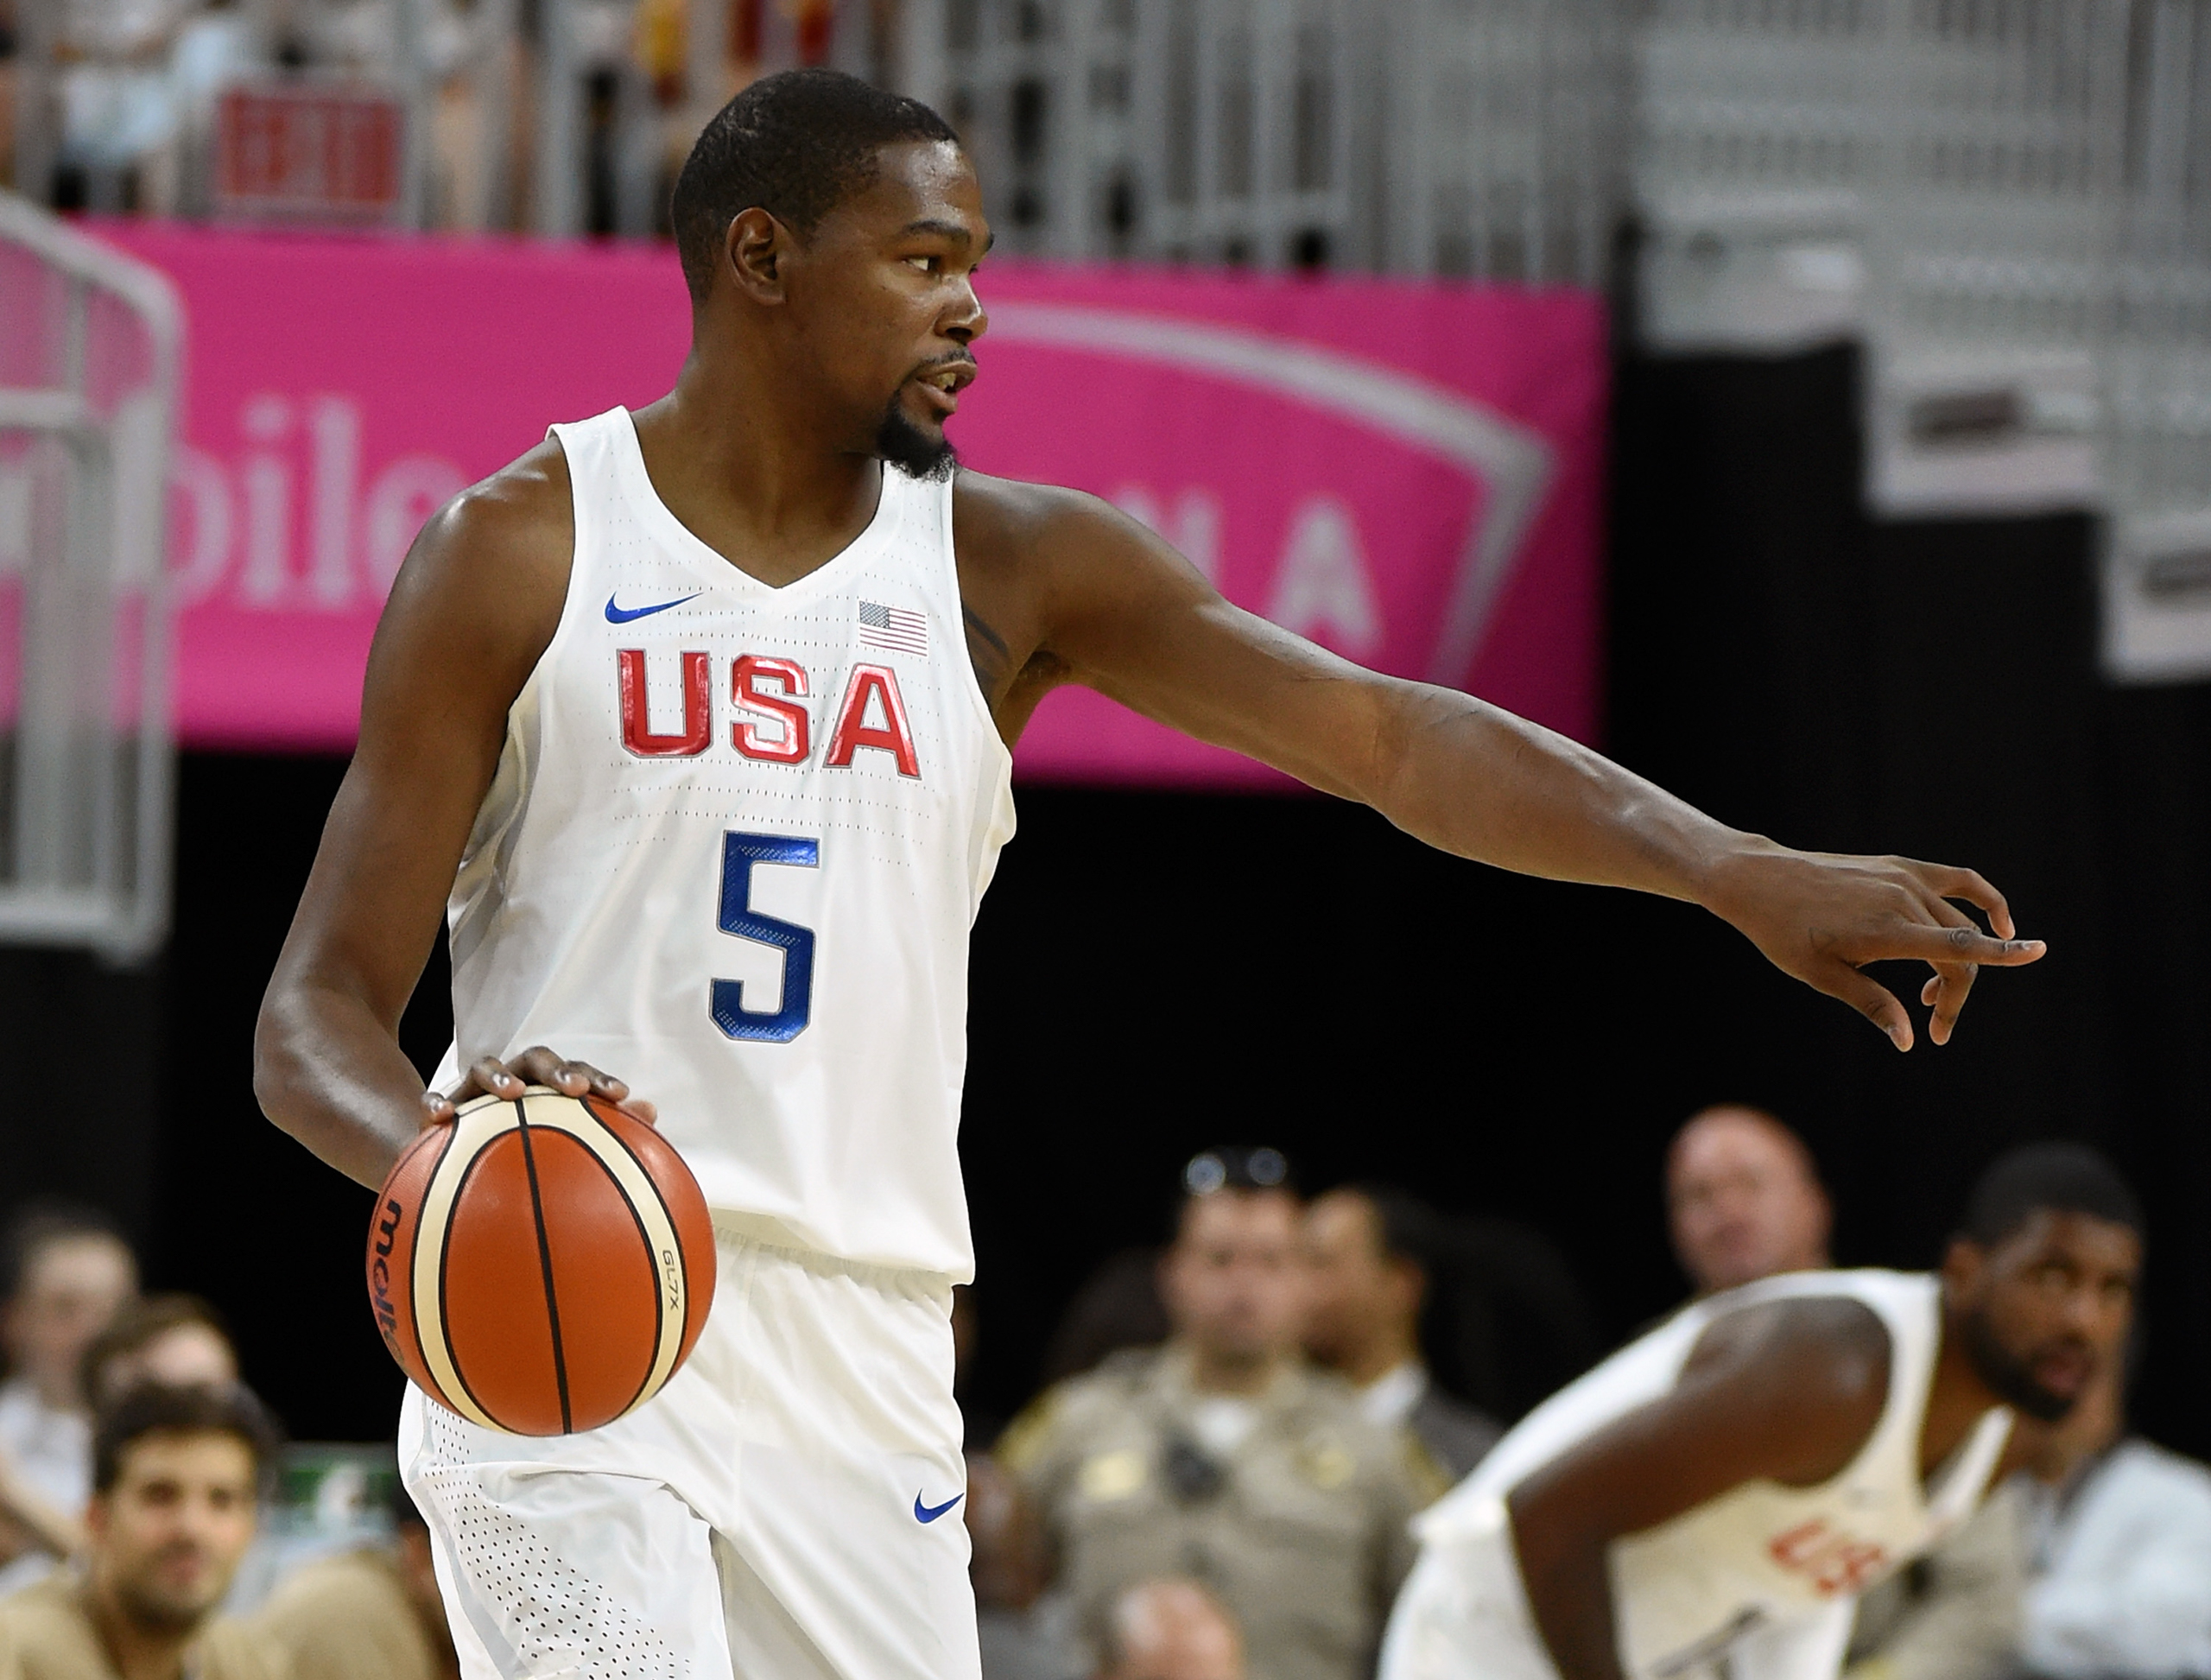 <strong>Kevin Durant, Basketball, USA</strong>Durant is the rare                                    NBA megastar who hasn't bowed out of Rio. With future Golden State teammates Klay Thompson and Draymond Green, he'll try to fend off Pau Gasol–led Spain for the Americans' third straight gold.